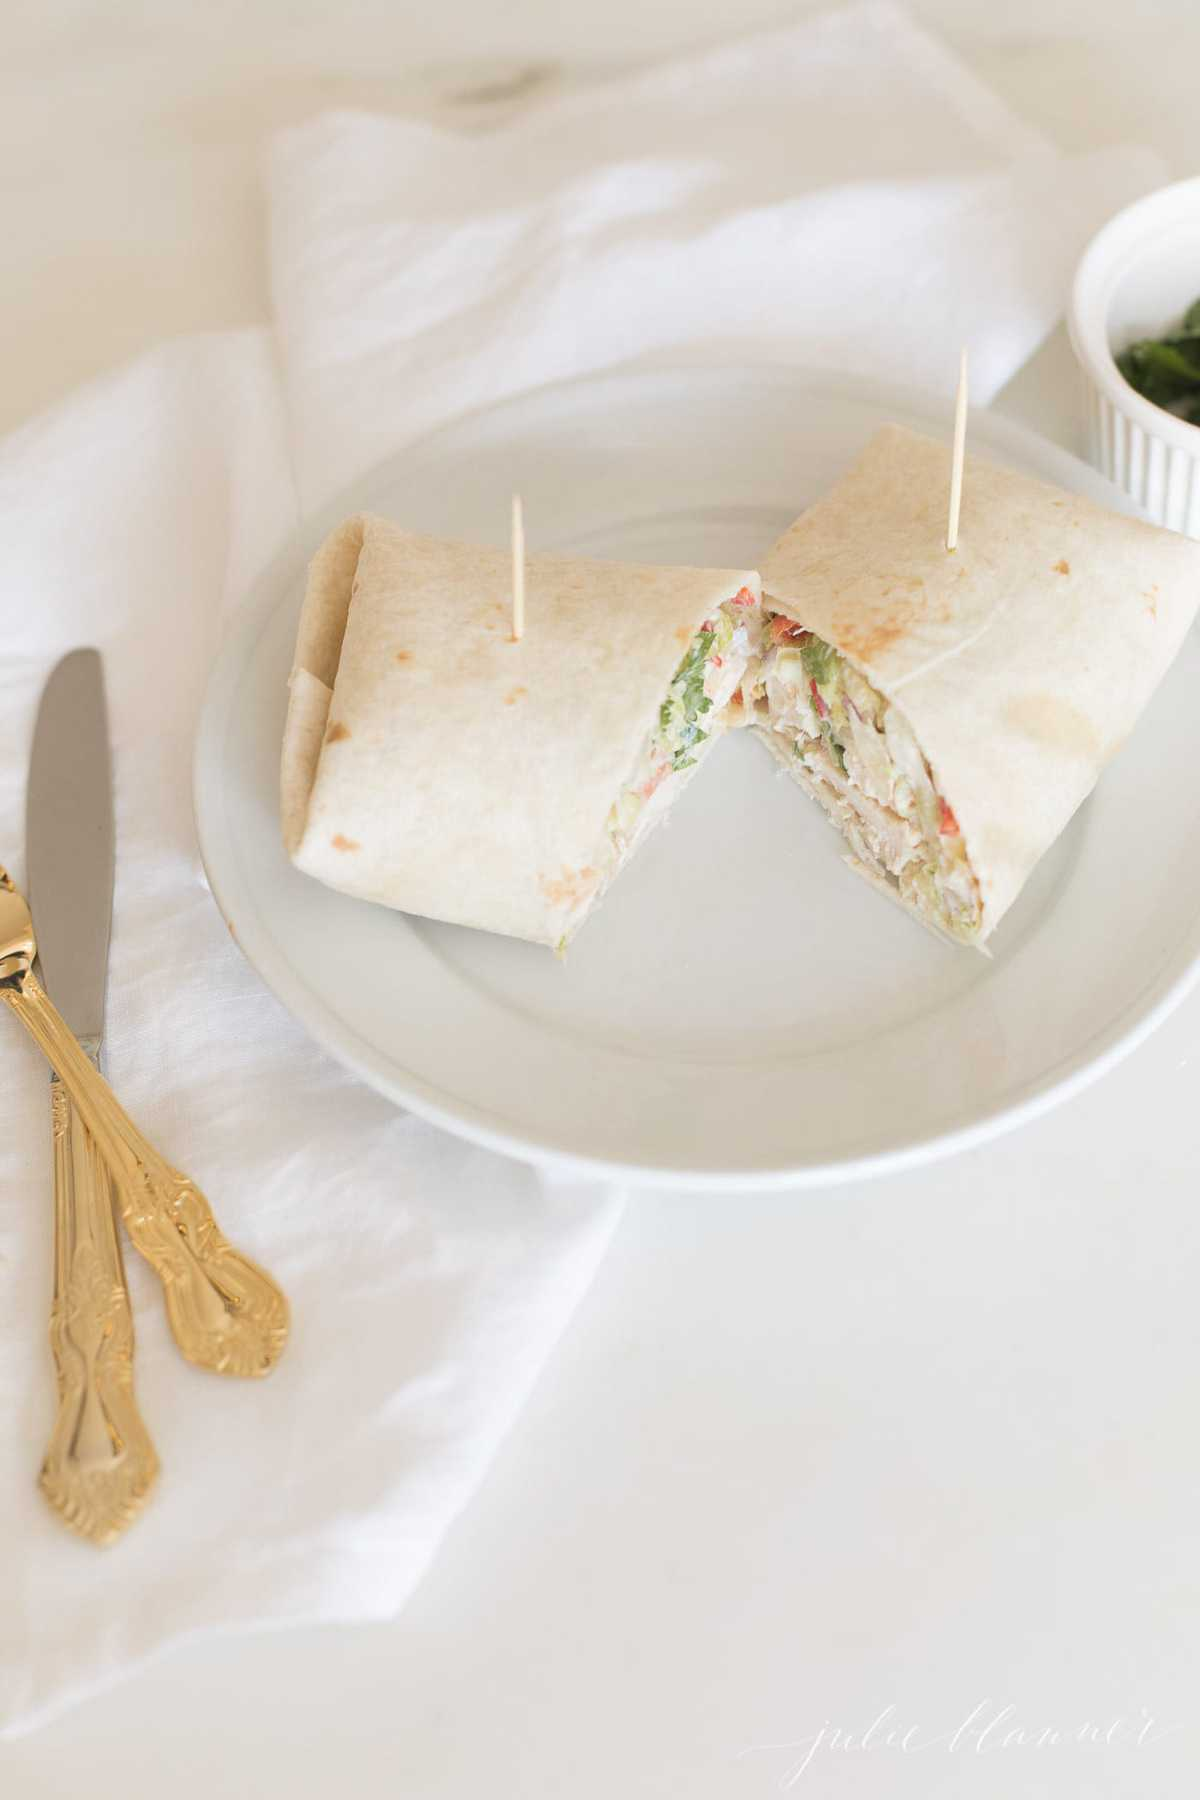 warp on a plate with napkin and utensils